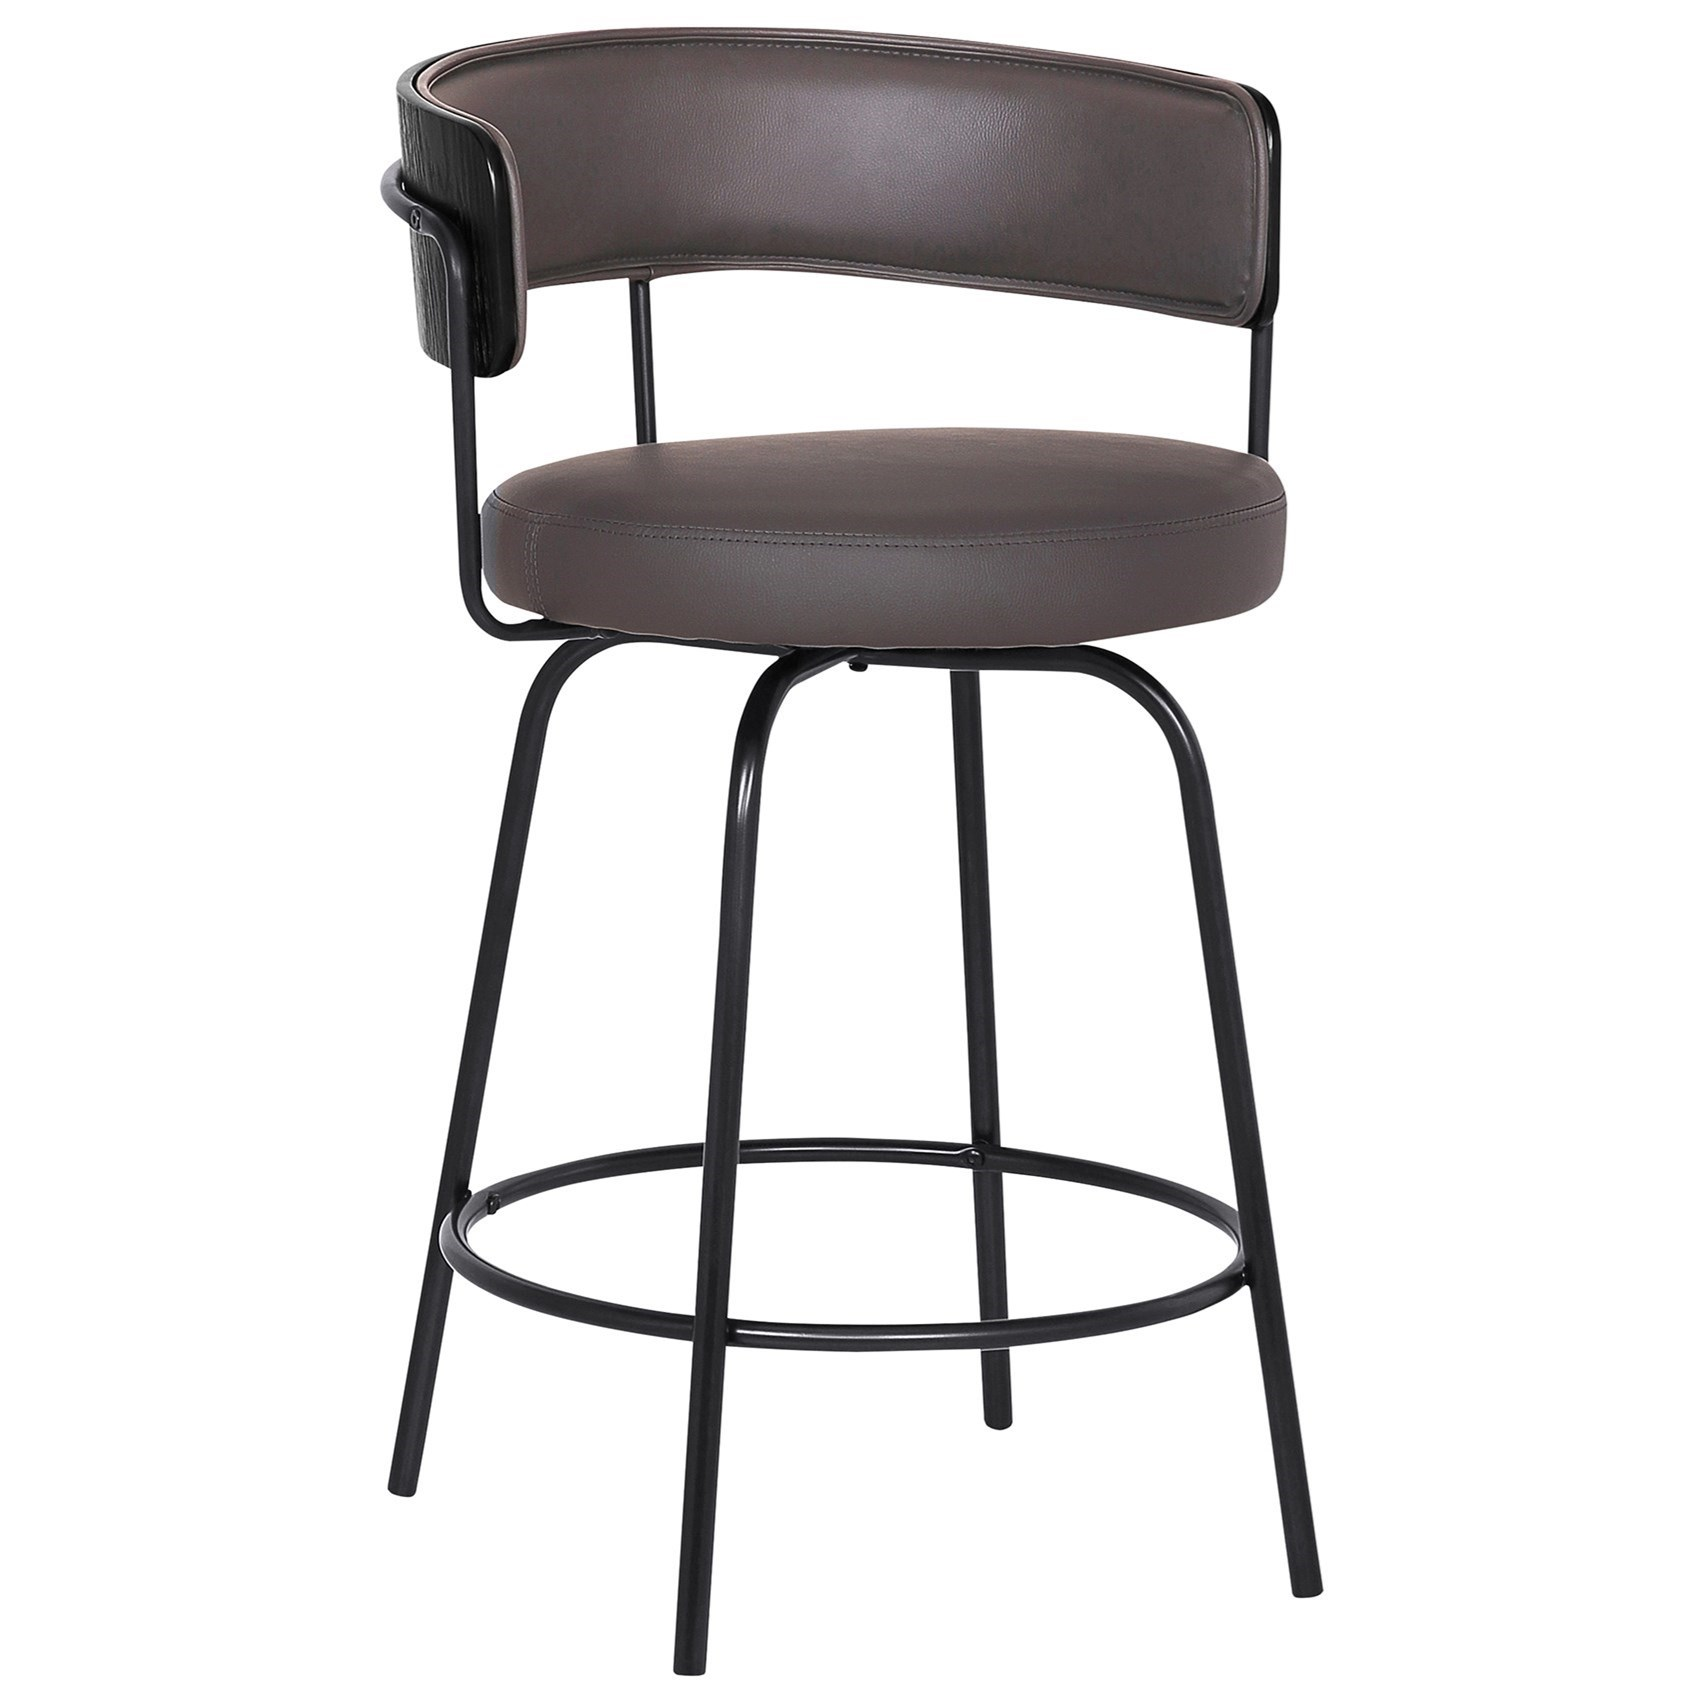 """Avalon 26"""" Gray Faux Leather Swivel Barstool by Armen Living at Fisher Home Furnishings"""